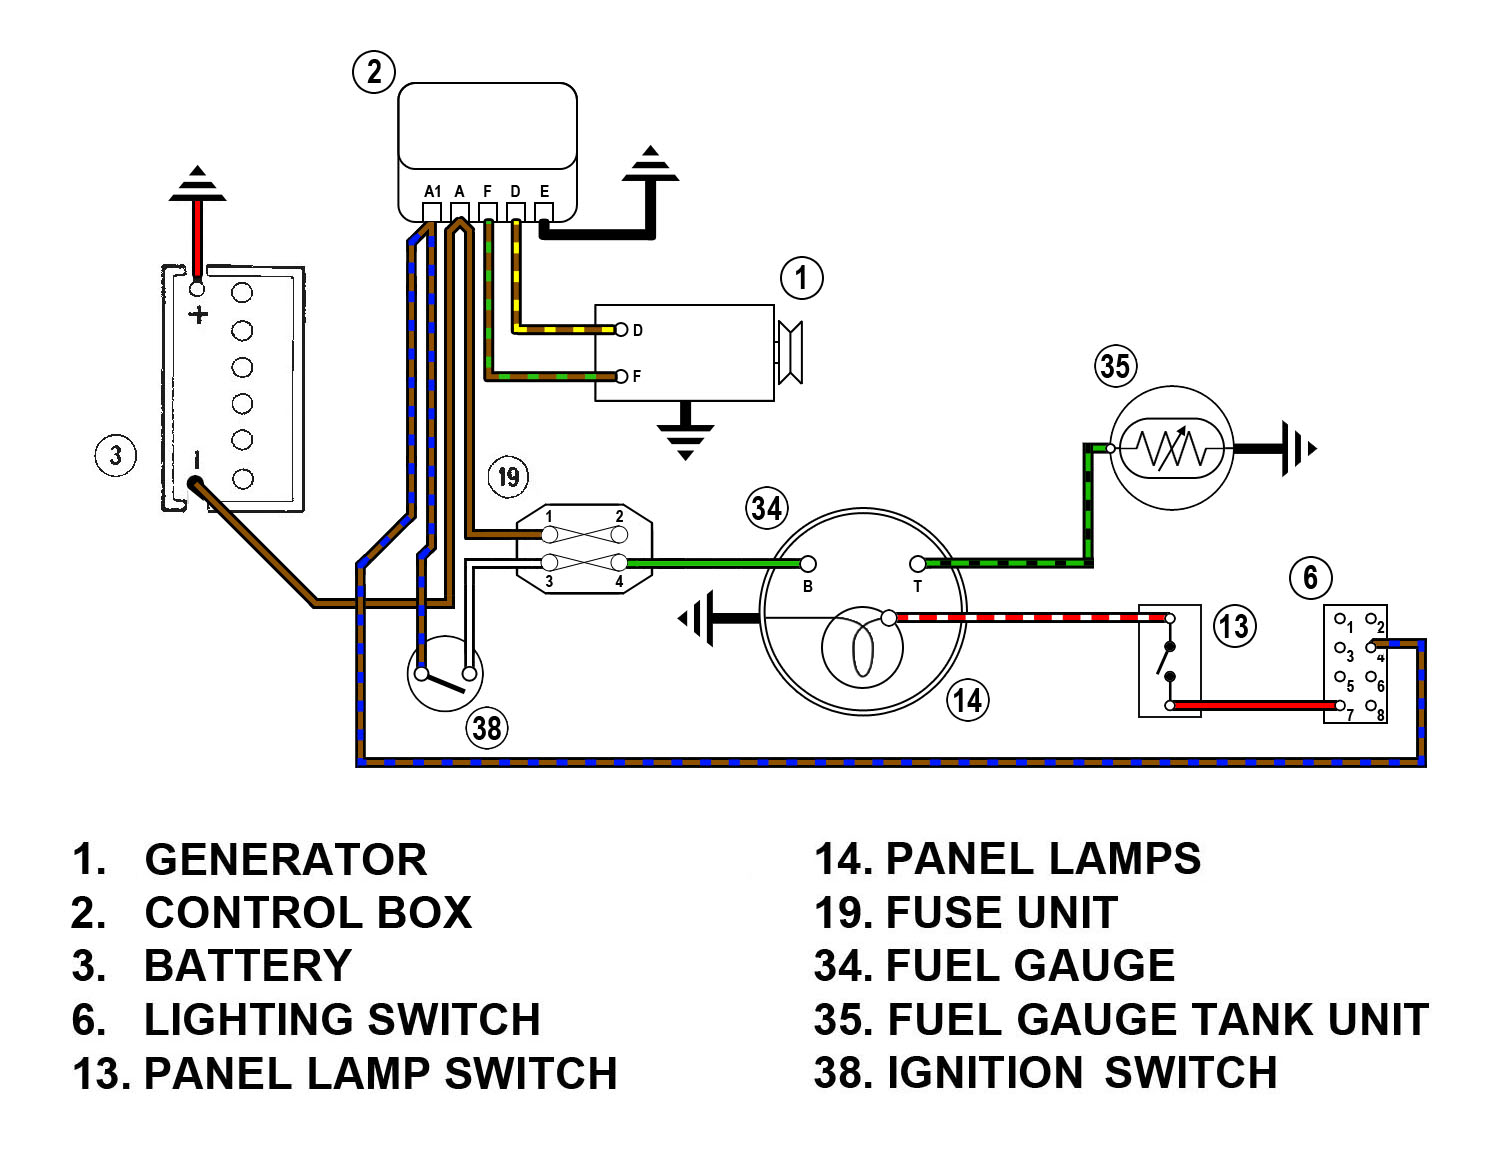 1977 ford f 150 fuel sending unit wiring wiring diagrams cheap 1999 S10 Gauge Connection Diagram 1977 ford f 150 fuel sending unit wiring bookmark about wiring diagram 1977 ford f 150 fuel sending unit wiring